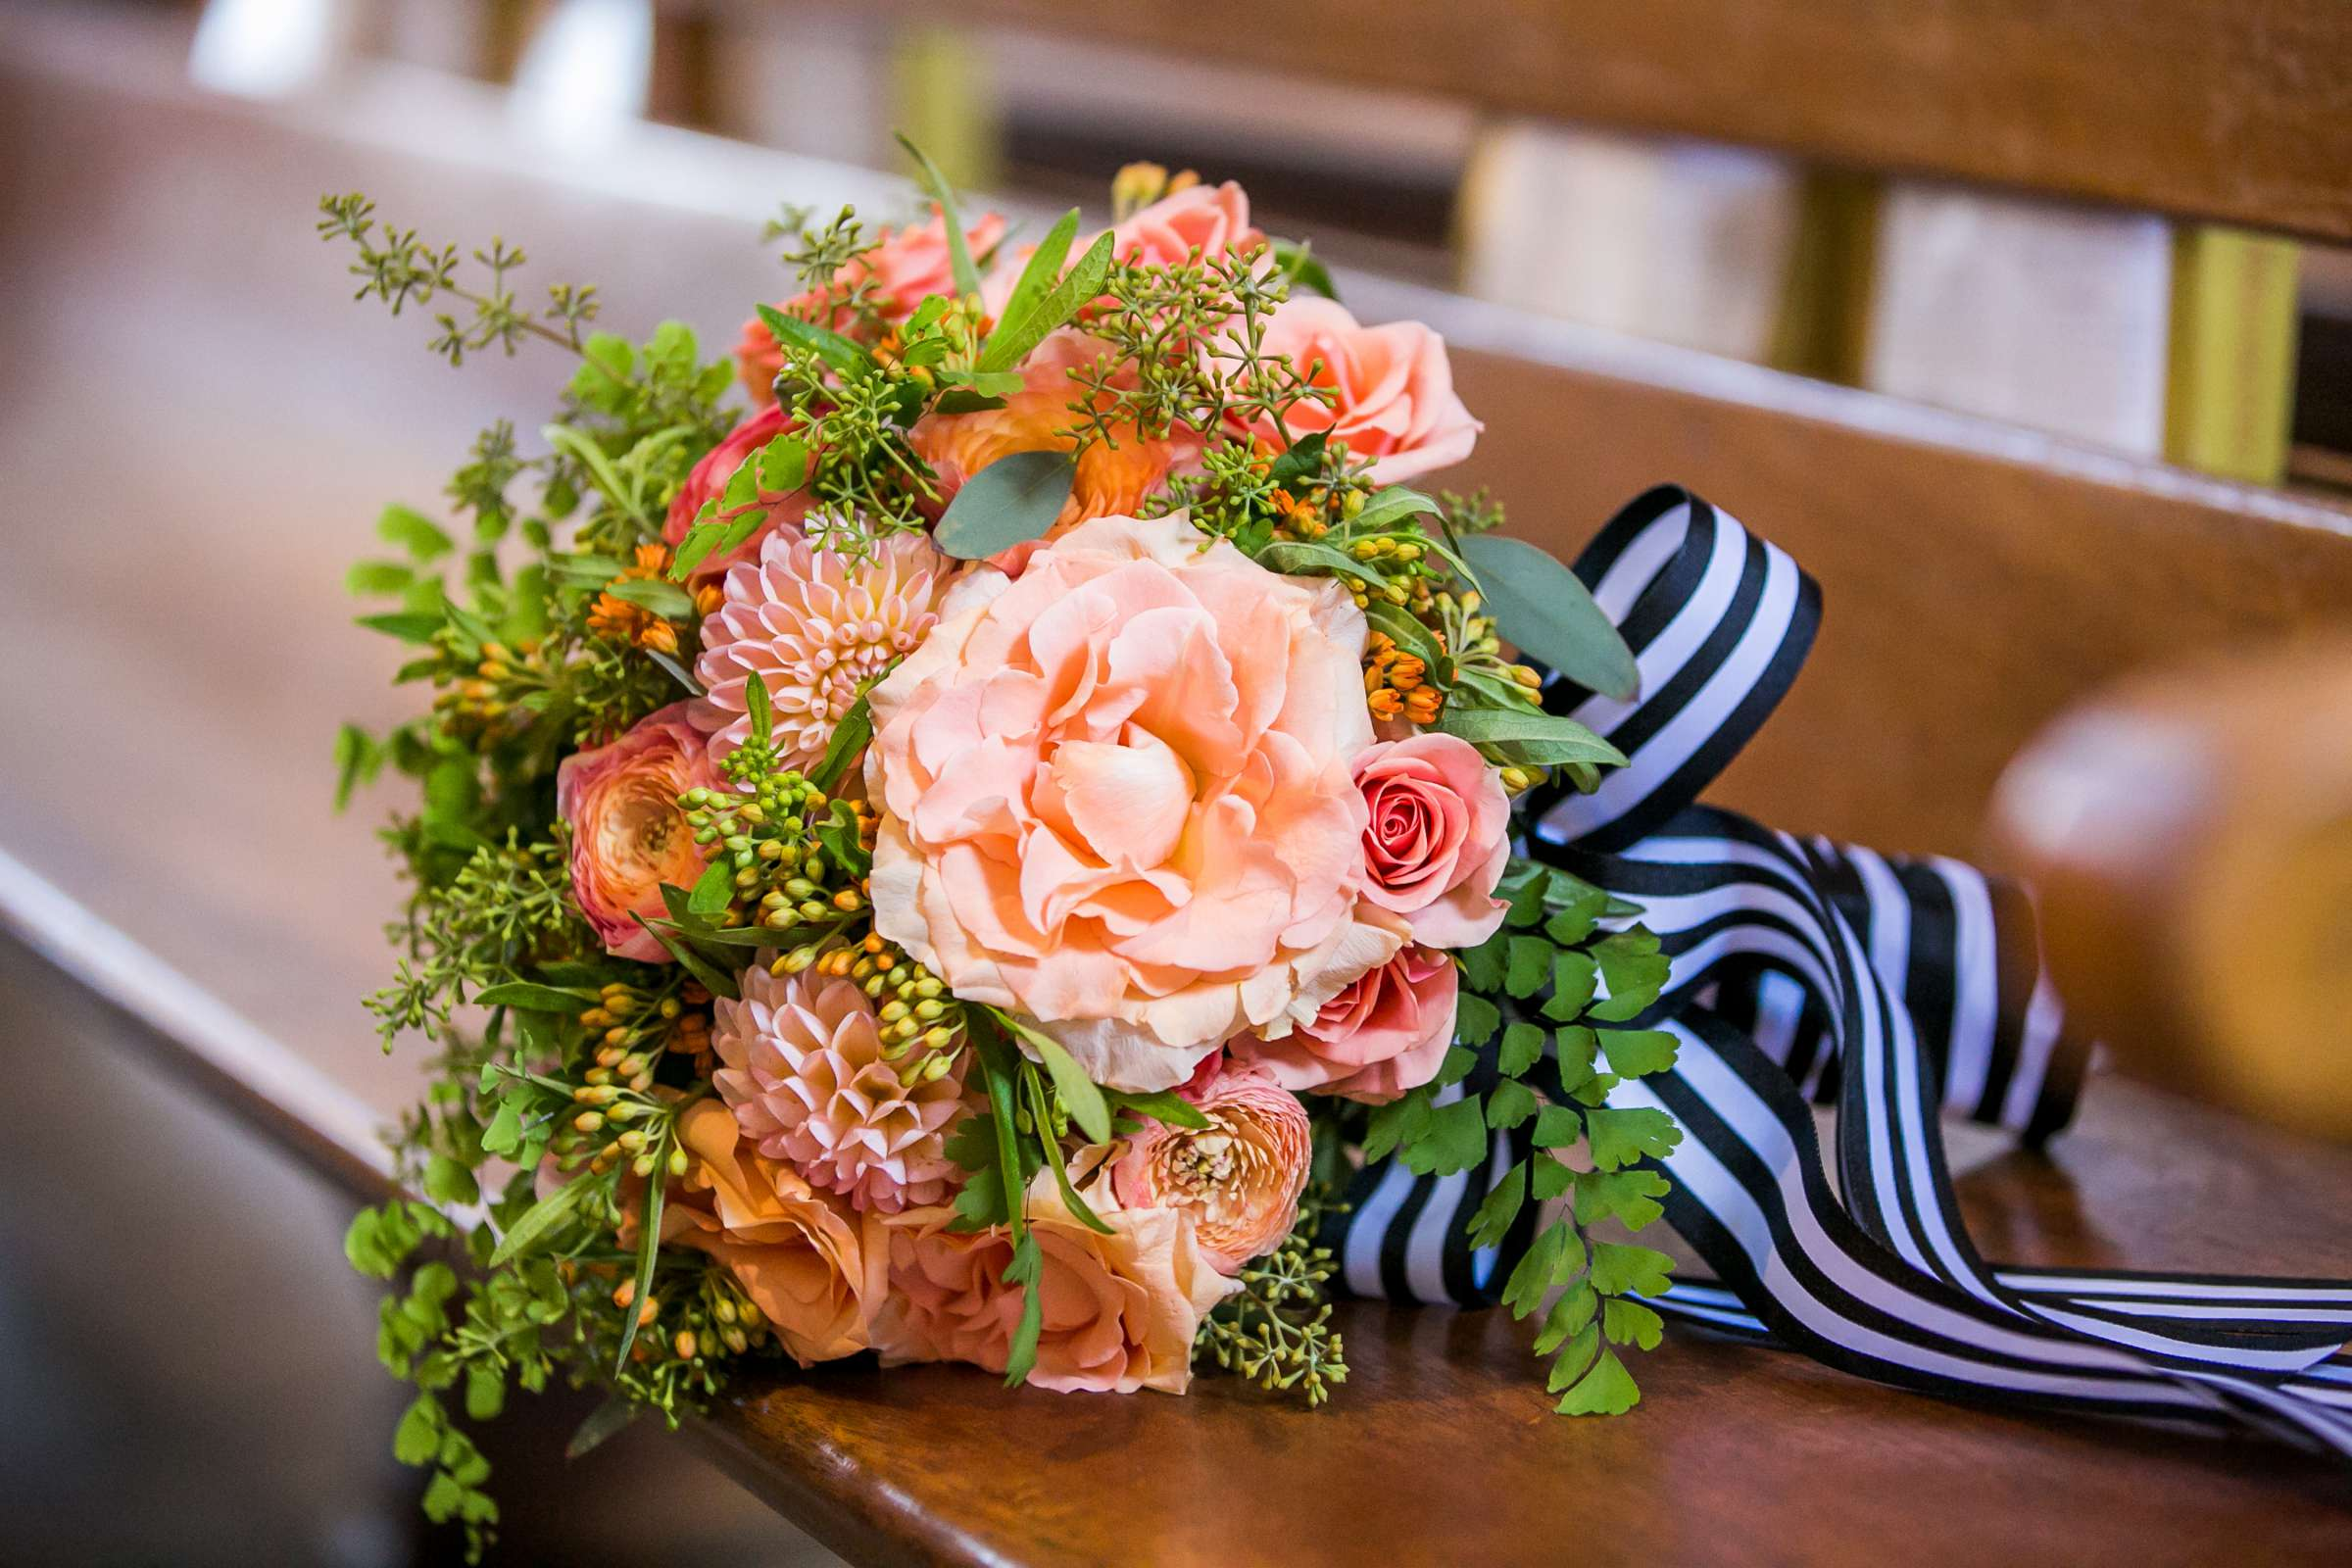 Flowers at Bahia Hotel Wedding coordinated by I Do Weddings, Meredith and Jack Wedding Photo #52 by True Photography